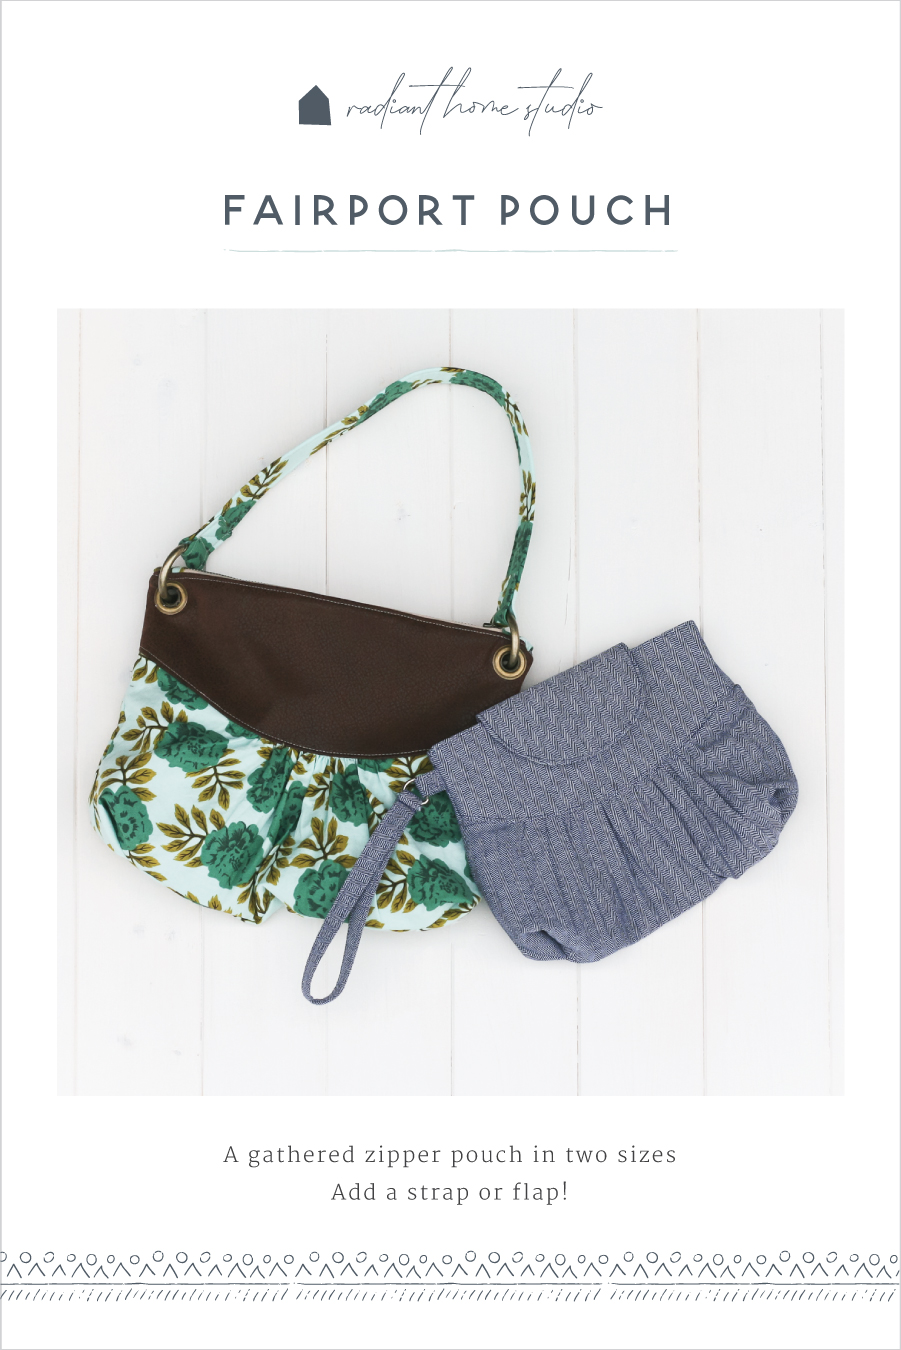 Fairport Purse & Pouch | Radiant Home Studio